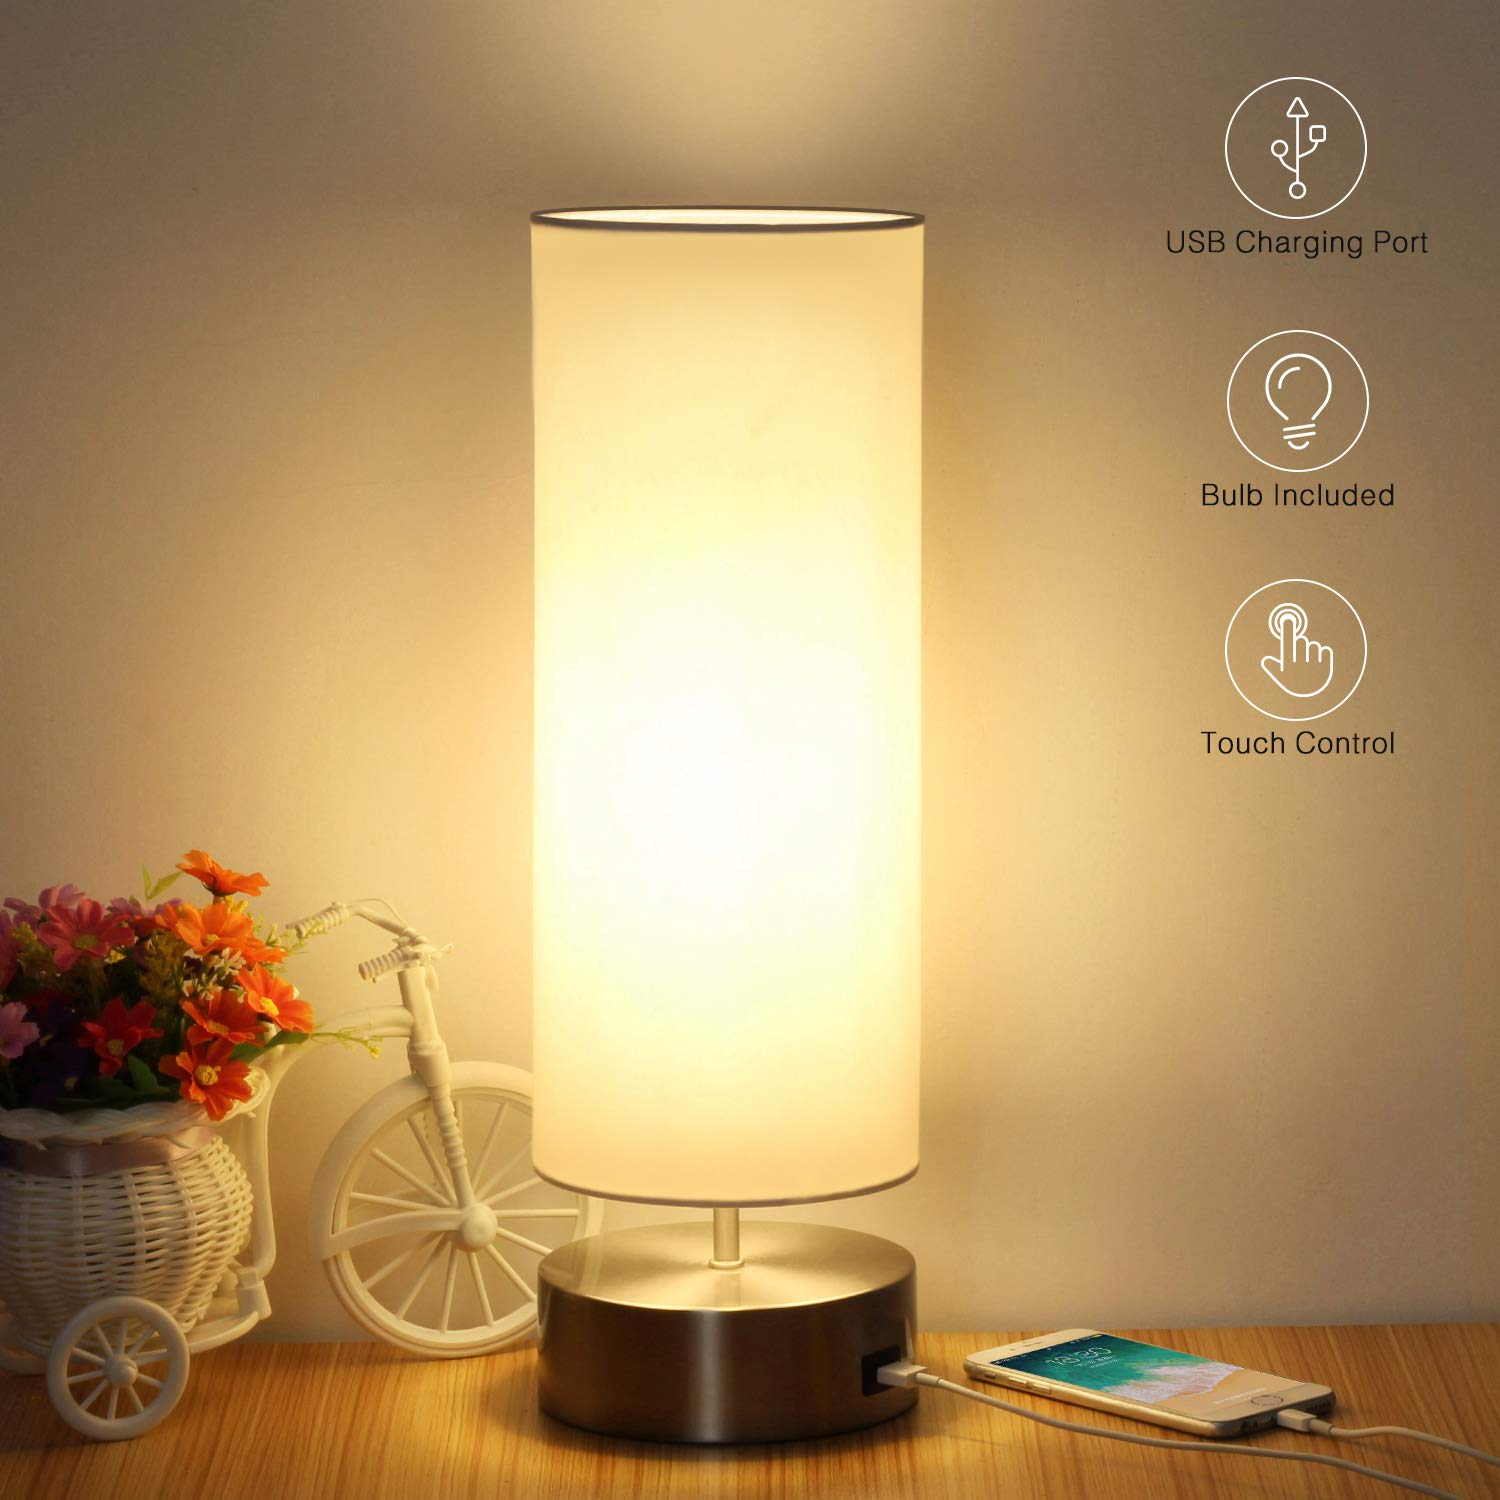 USB Table Lamp, Boncoo Touch Control Bedside Nightstand Lamp Quick USB Charging Port 3 Level Brightness Dimmable Modern Ambient Light with Round Lampshade for Bedroom Living Room, 6W LED Bulb Included